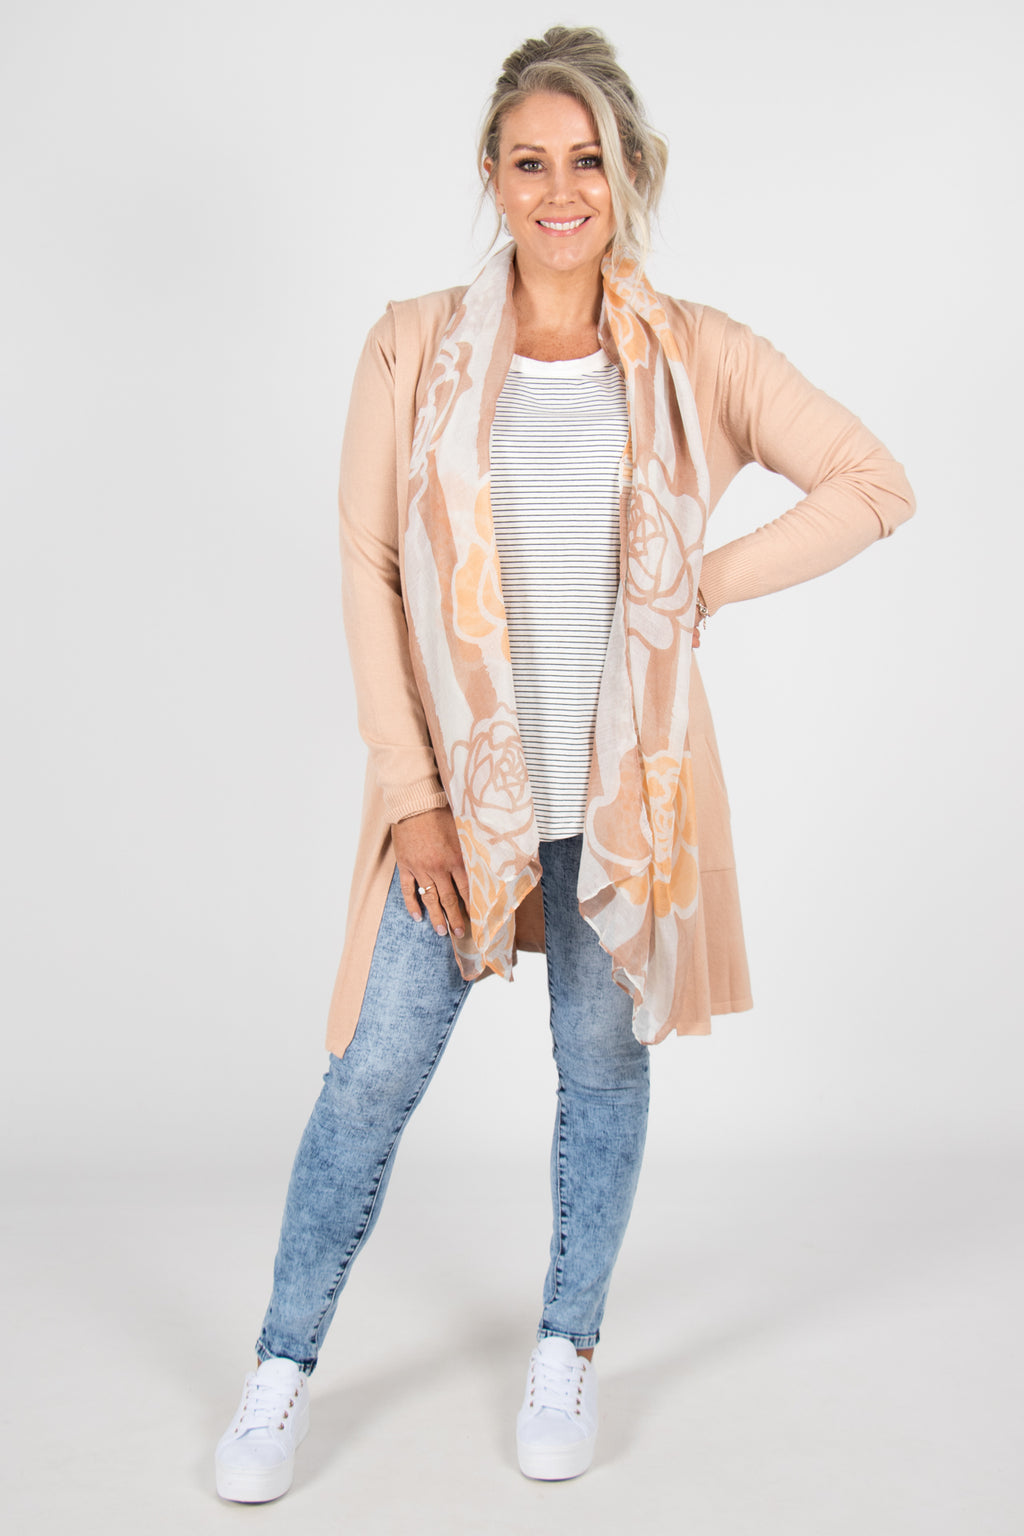 Jubilee Cardi in Soft Peach